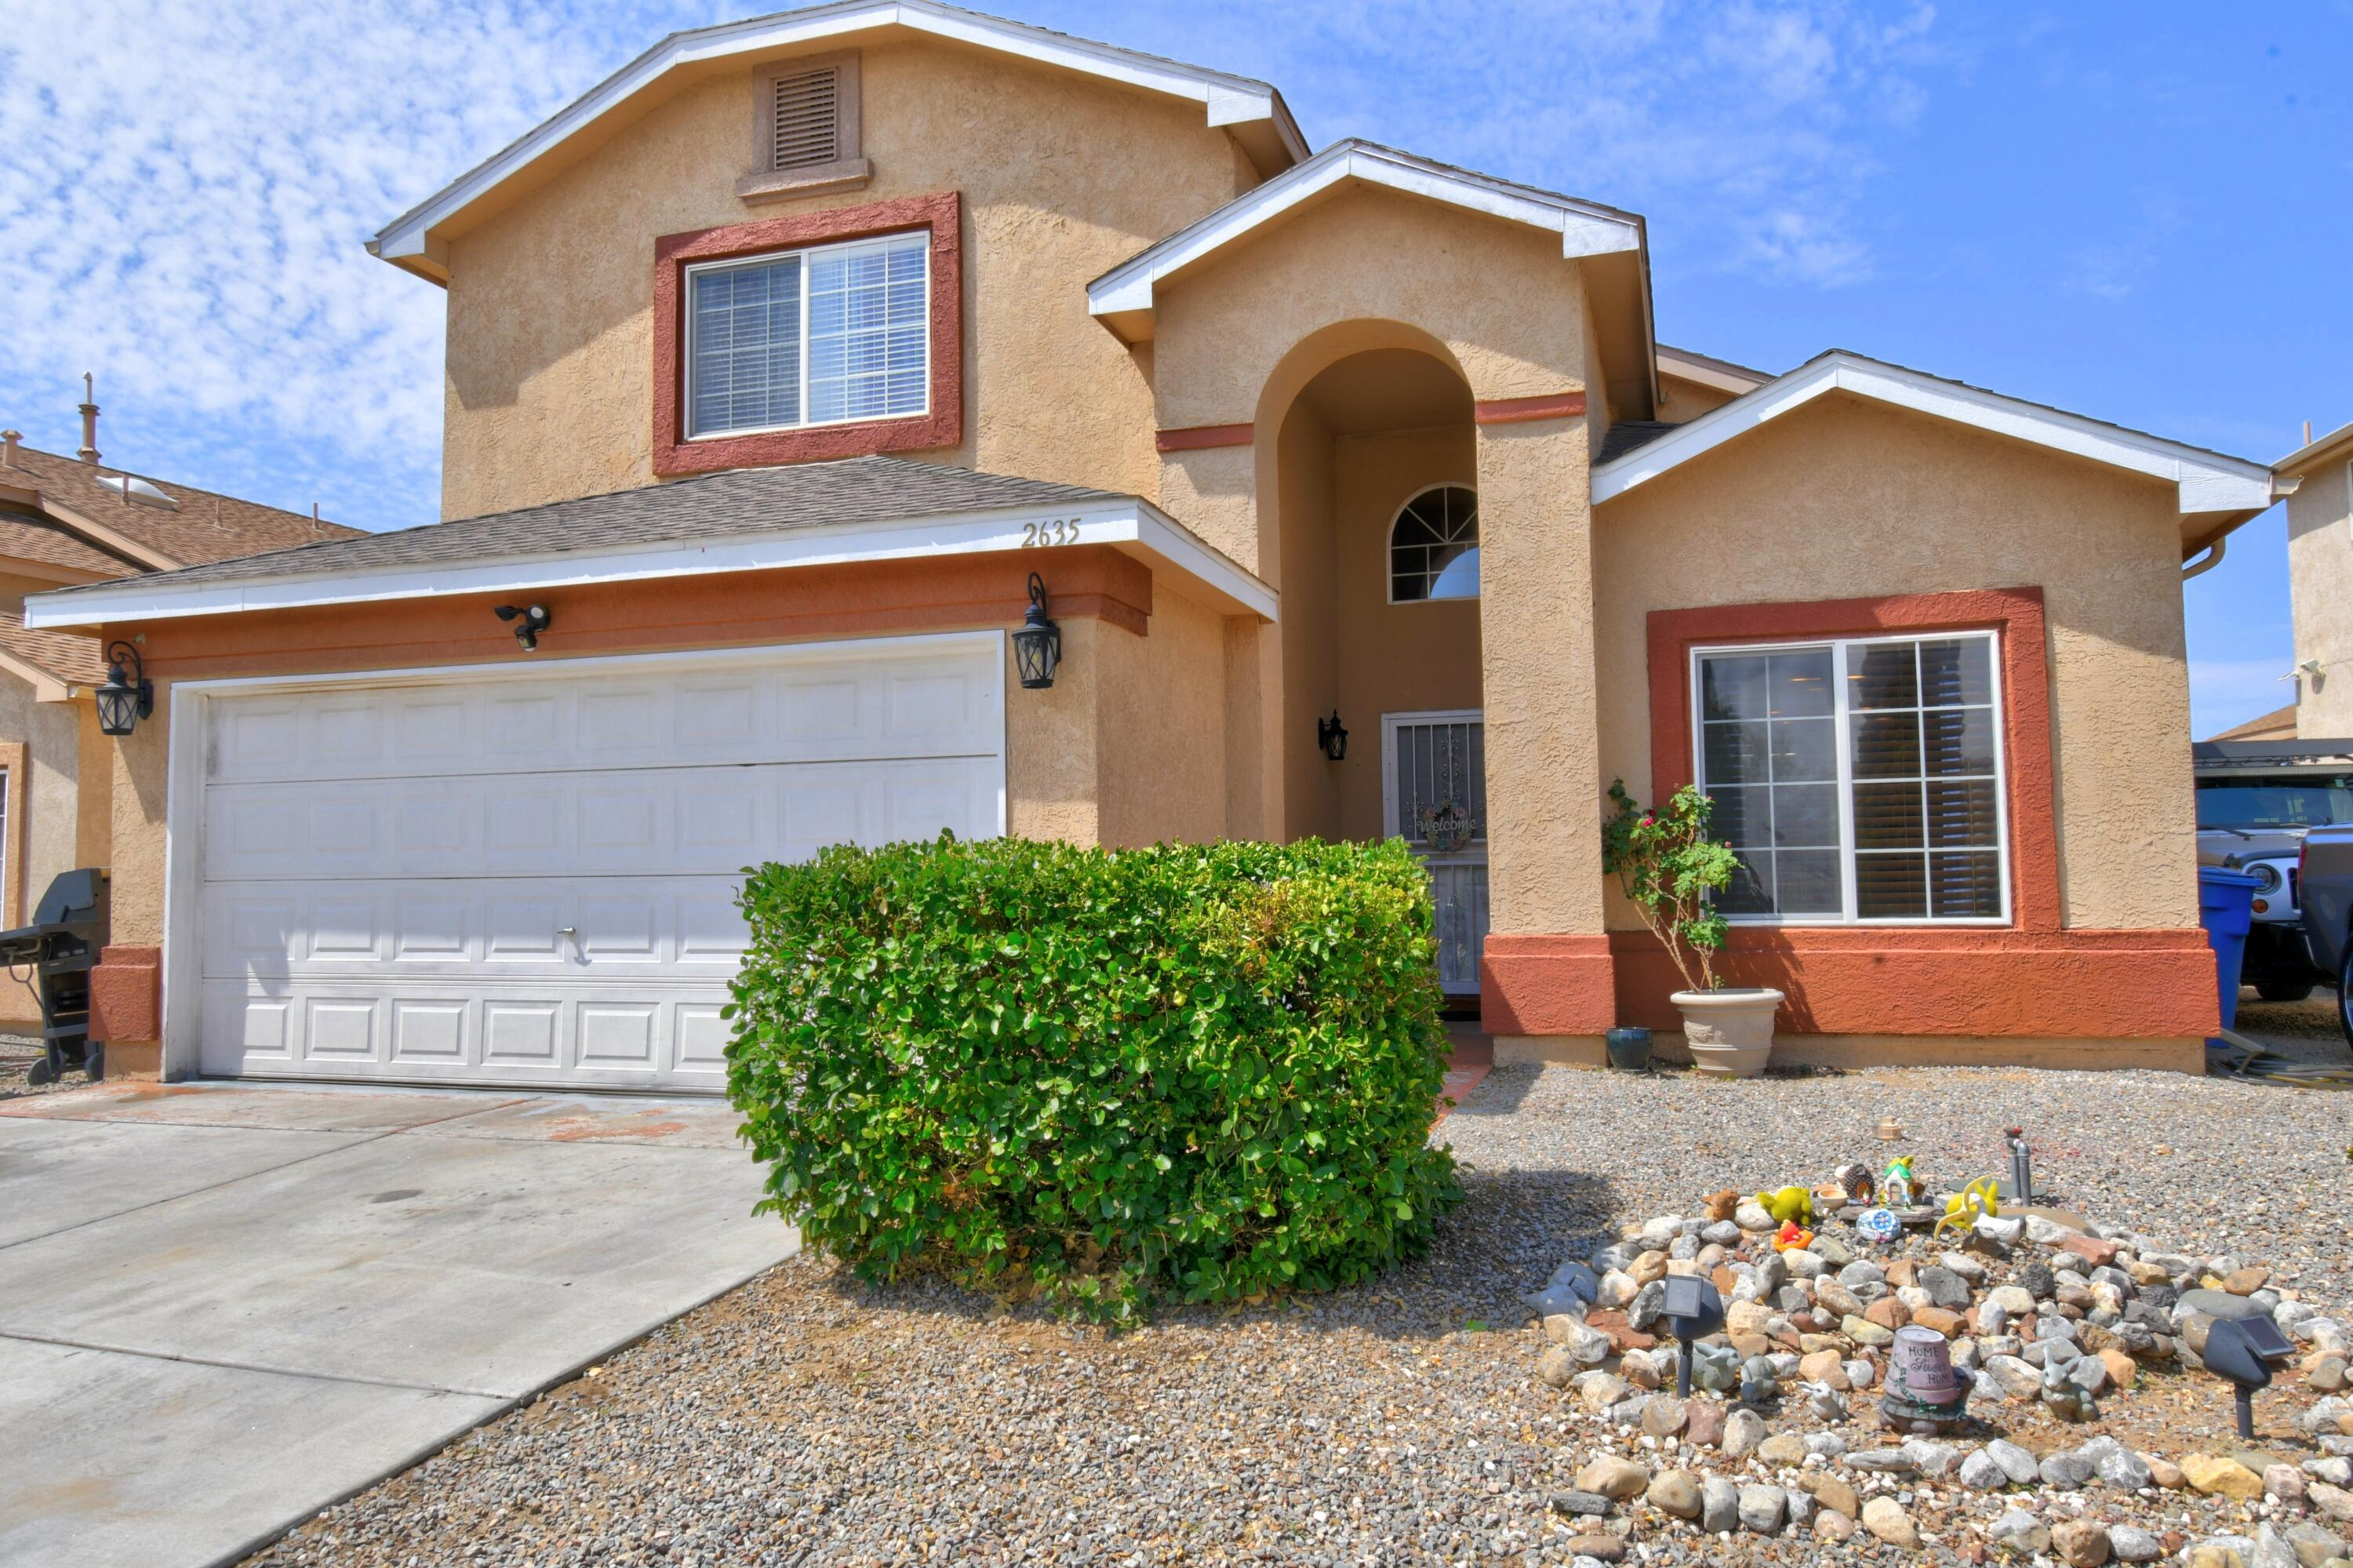 Welcome to this Wonderful spacious home with custom character throughout. It boasts 3 great sized bedrooms, Huge closets and a huge Loft that could be a 4th bedroom,  school room or a 2nd living space. The Master Bedroom is on the MAIN floor with a grand bathroom and Huge walk in closet. Enjoy a separate dining room in the front of the house or use this space for a private office downstairs. The garage boasts a nice Epoxy floor, storage and the house features vaulted ceilings, nichos, and rock accents throughout. You'll appreciate the Refrigerated air! NO HOA -  Near many amenities: Shopping, Theater, Schools, Dining options, easy access to I25 & the Rio Grande River with all its hiking and biking opportunities. Bring your Offers!